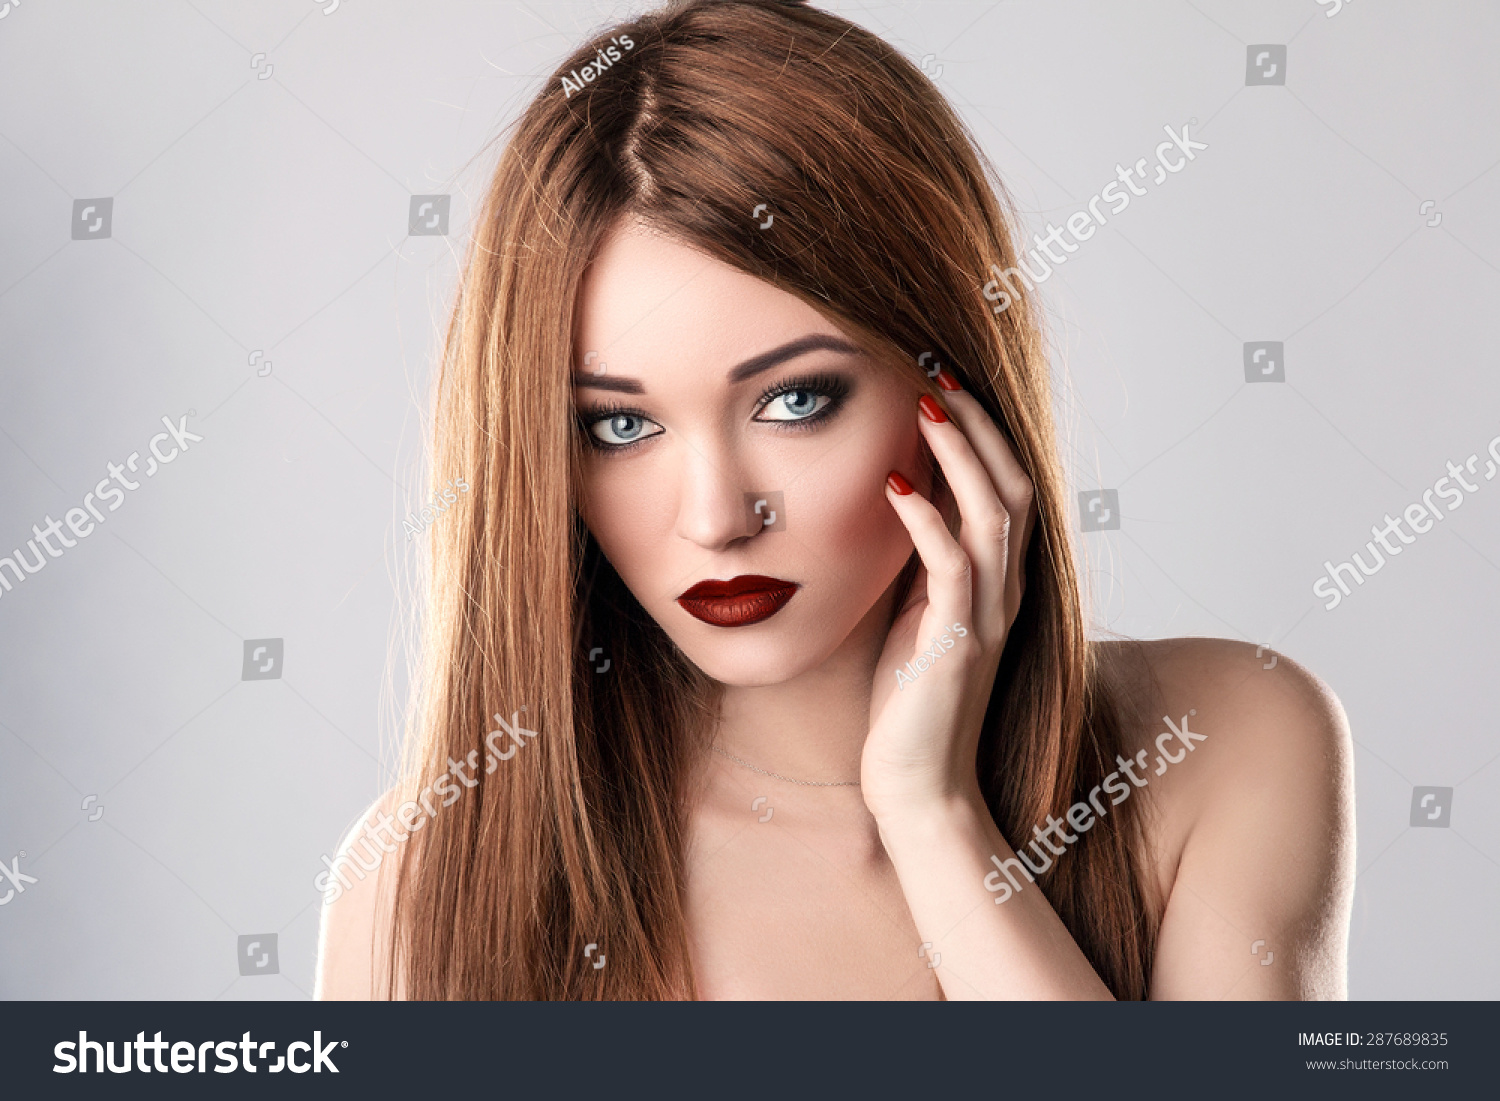 Fashion Beauty Model. Sexy Young Woman On Grey Background